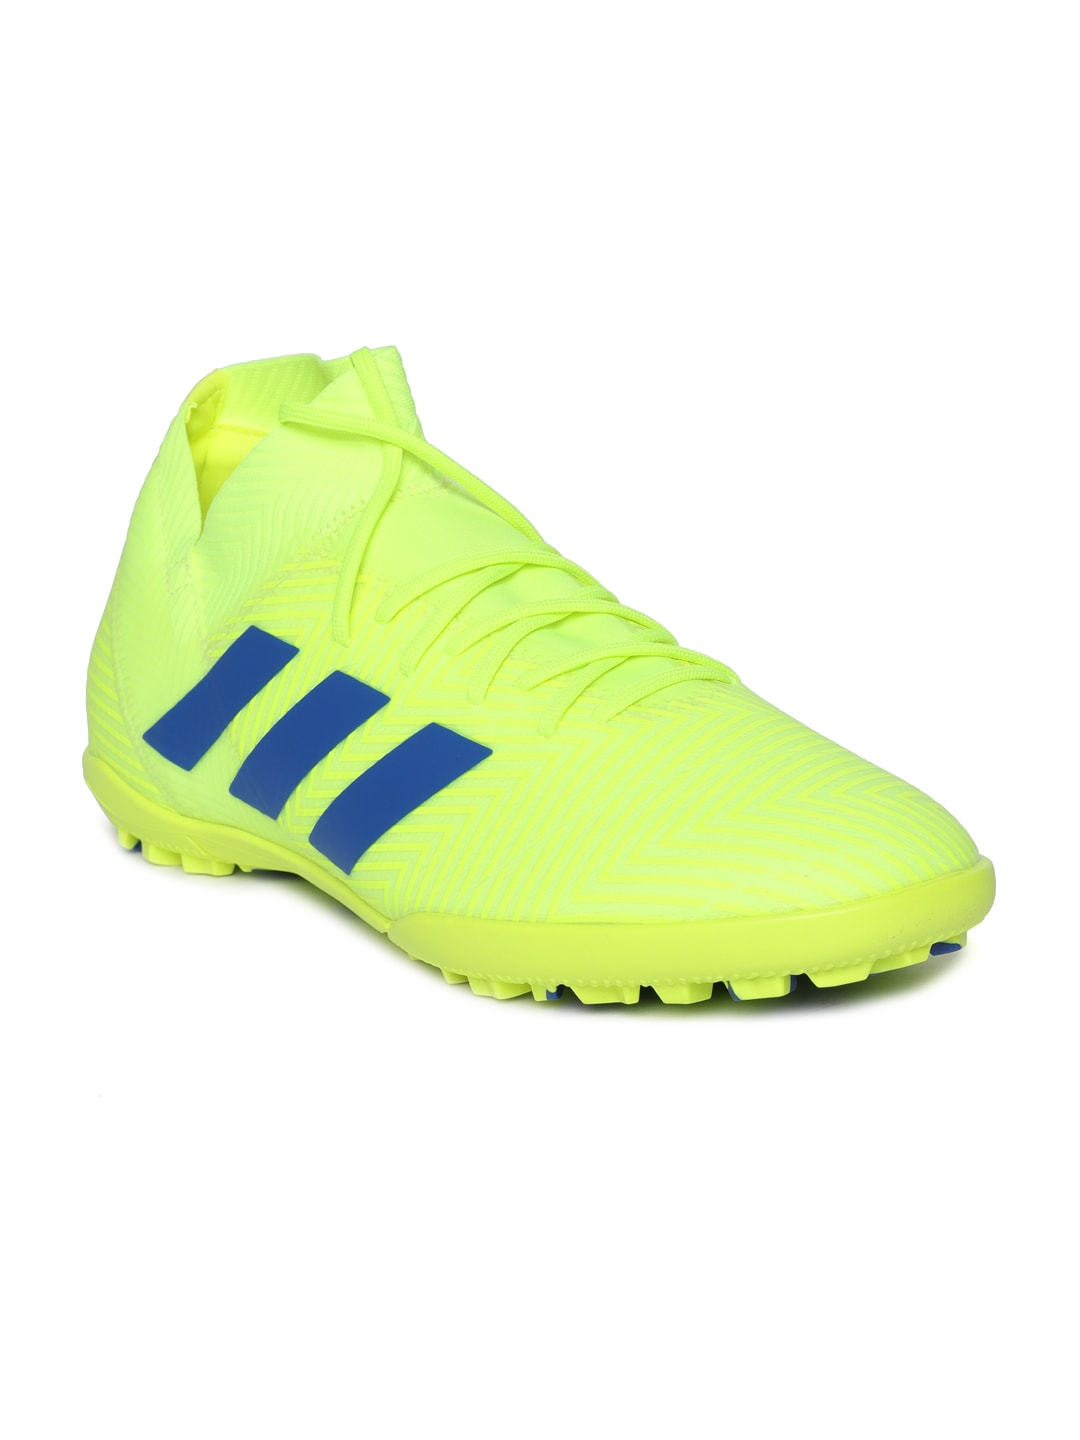 a22814c511 adidas - Exclusive adidas Online Store in India at Myntra